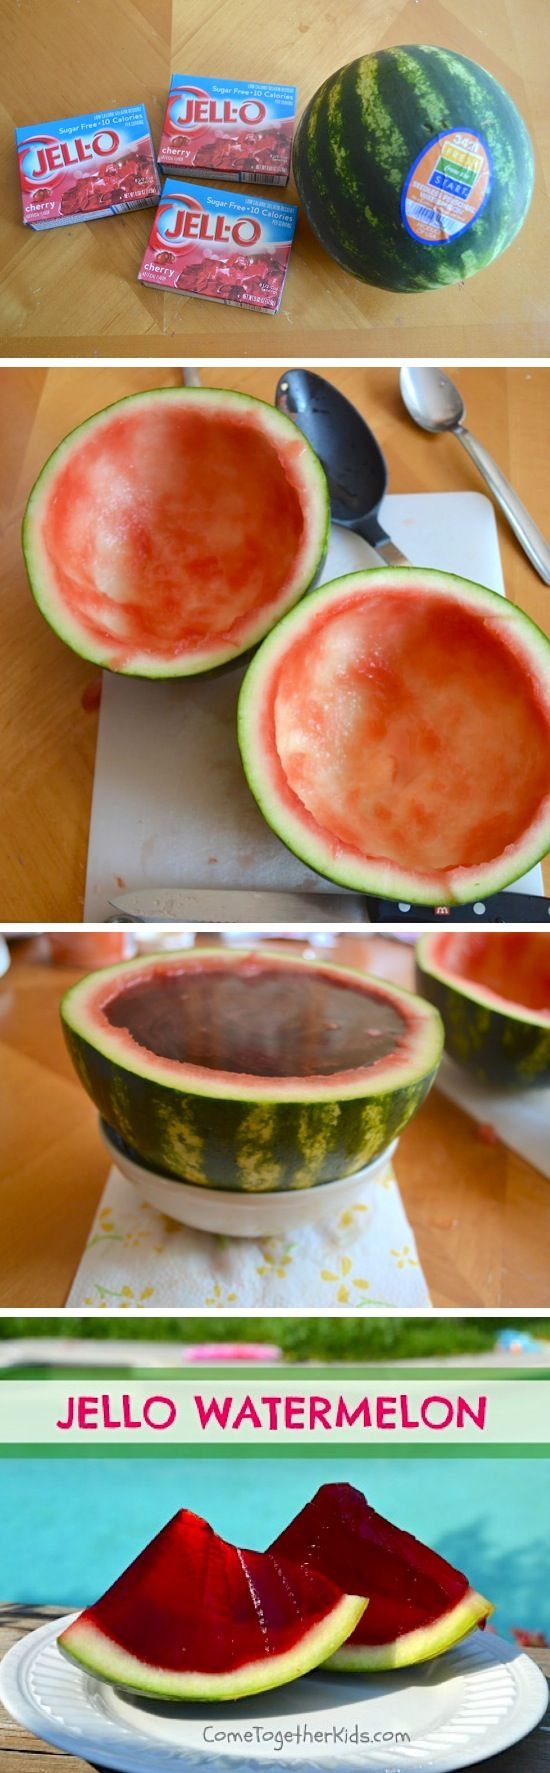 best images about watermelon carvings fruits and jello watermelon i would use watermelon flavored jello instead of cherry though